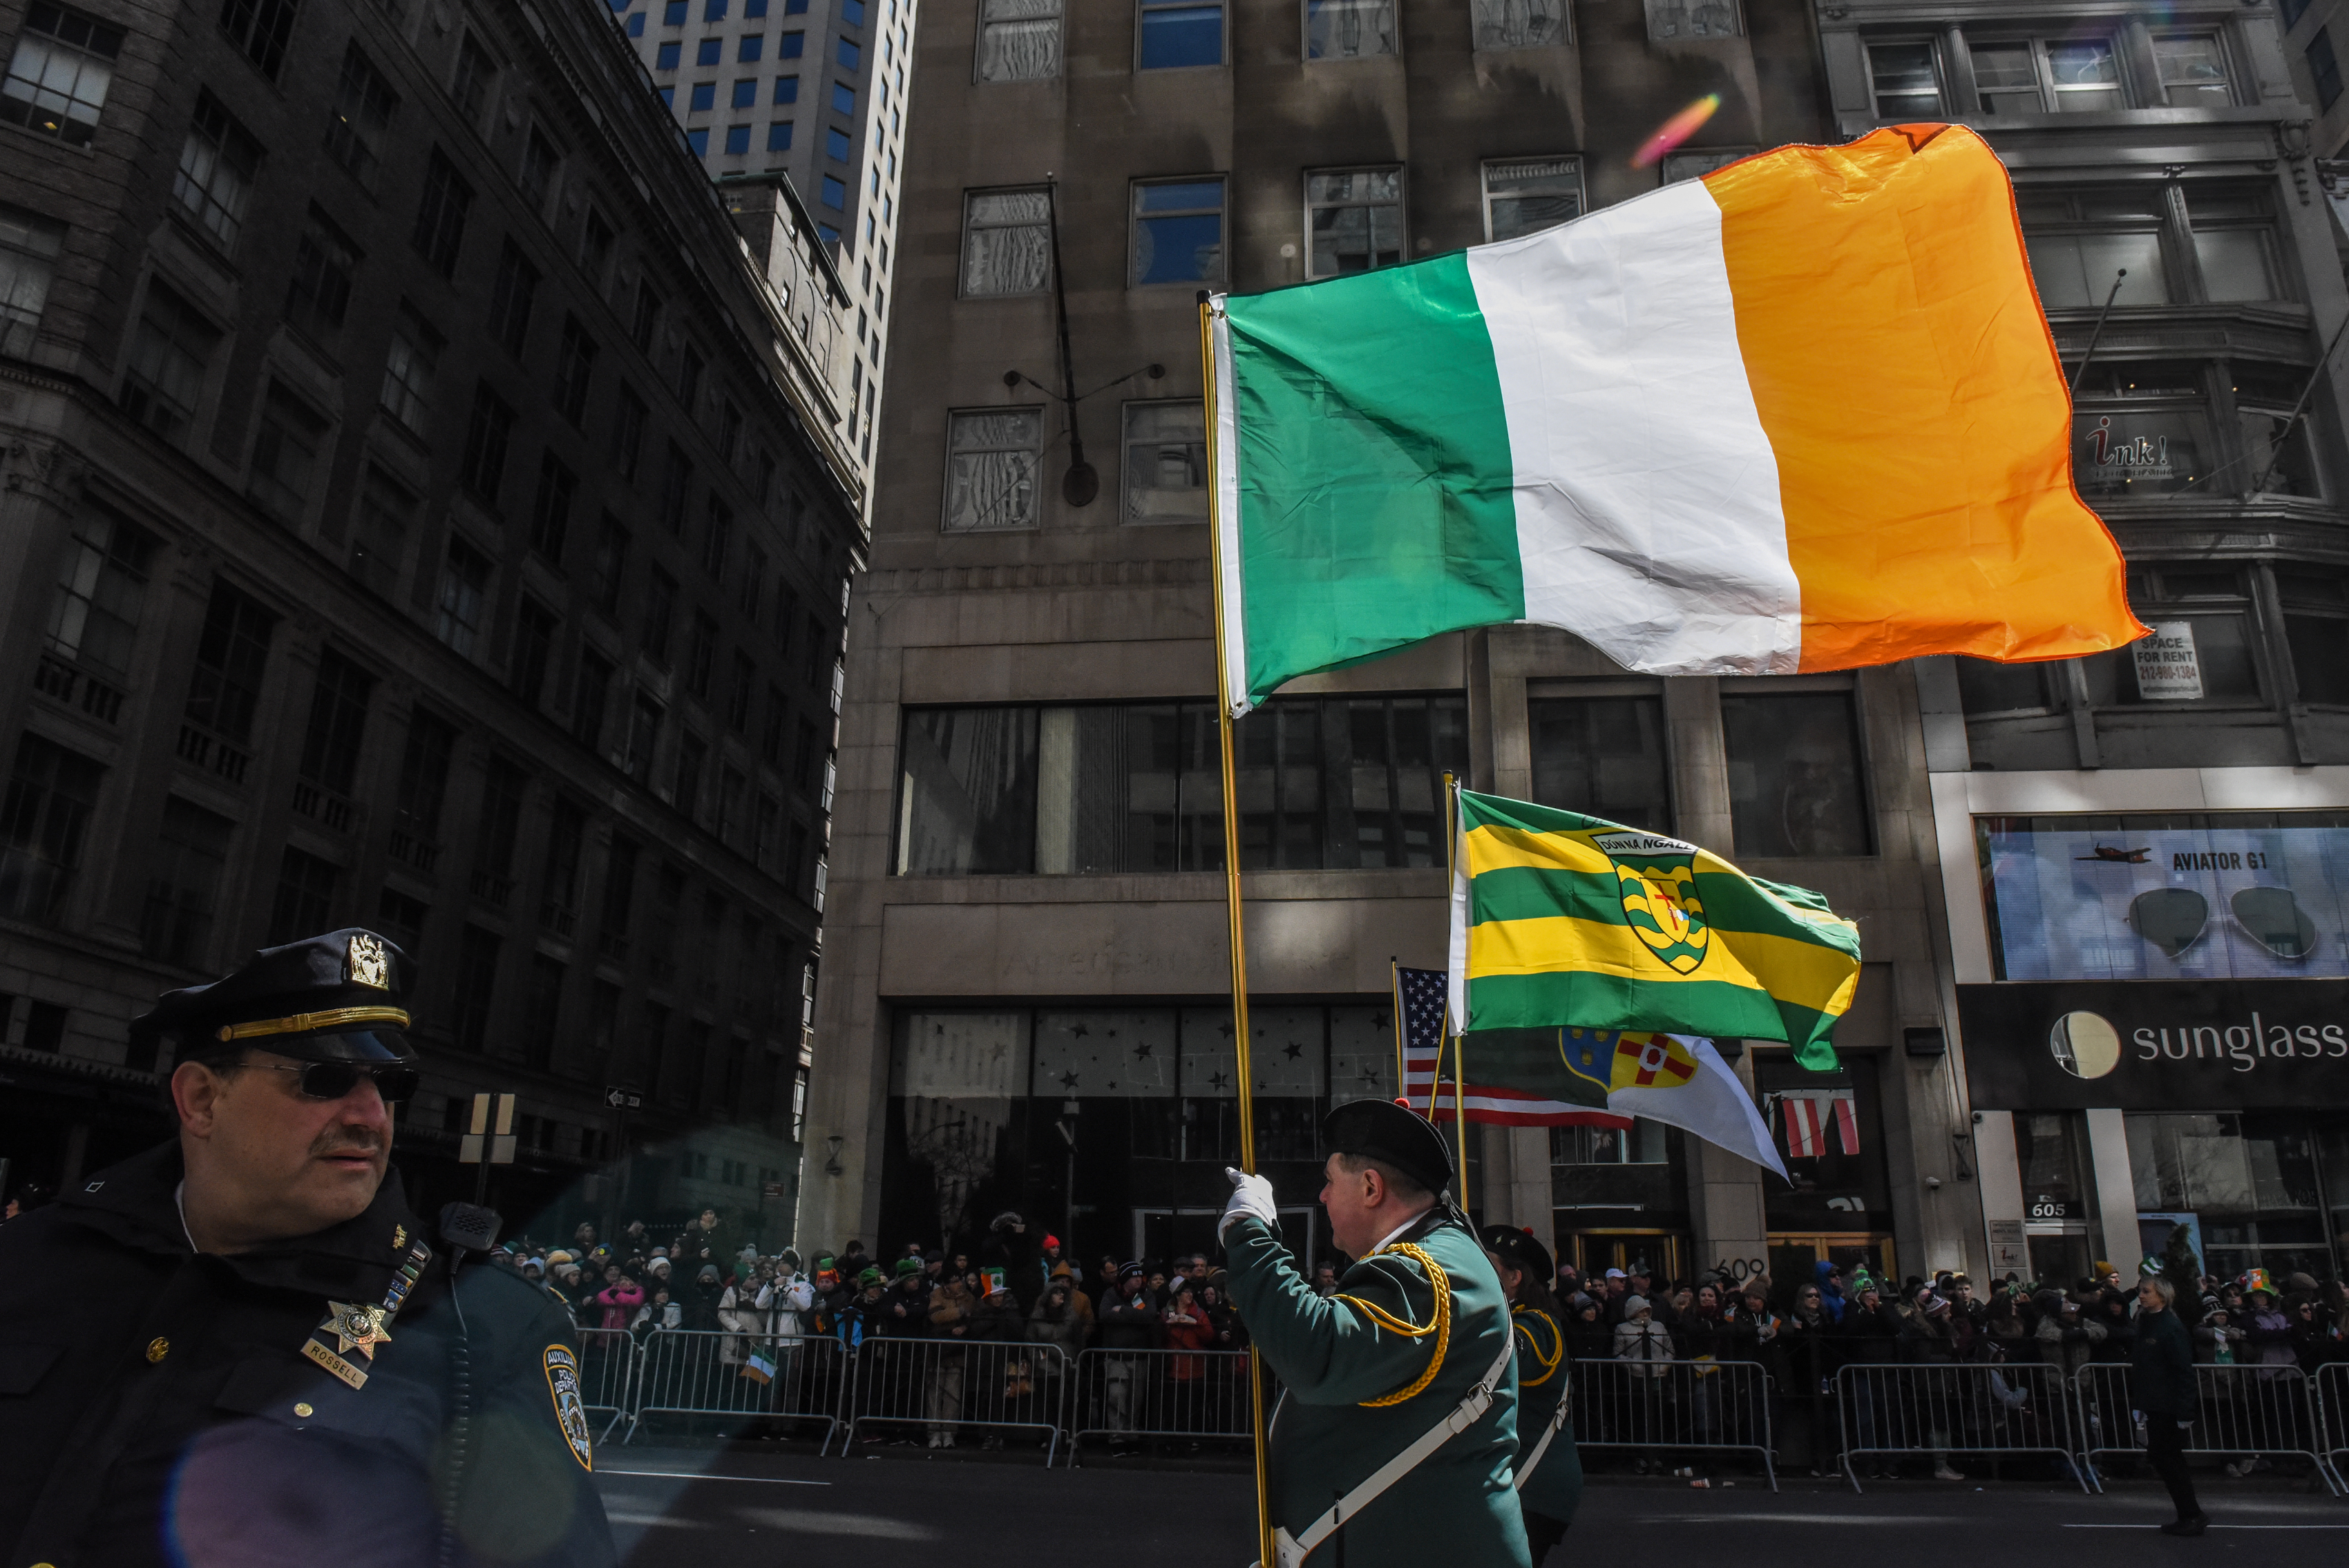 People participate in the annual St. Patrick's Day parade along 5th Ave. on March 17, 2018 in New York City. New York's Saint Patrick's Day parade is the largest in the world. (Photo by Stephanie Keith/Getty Images)